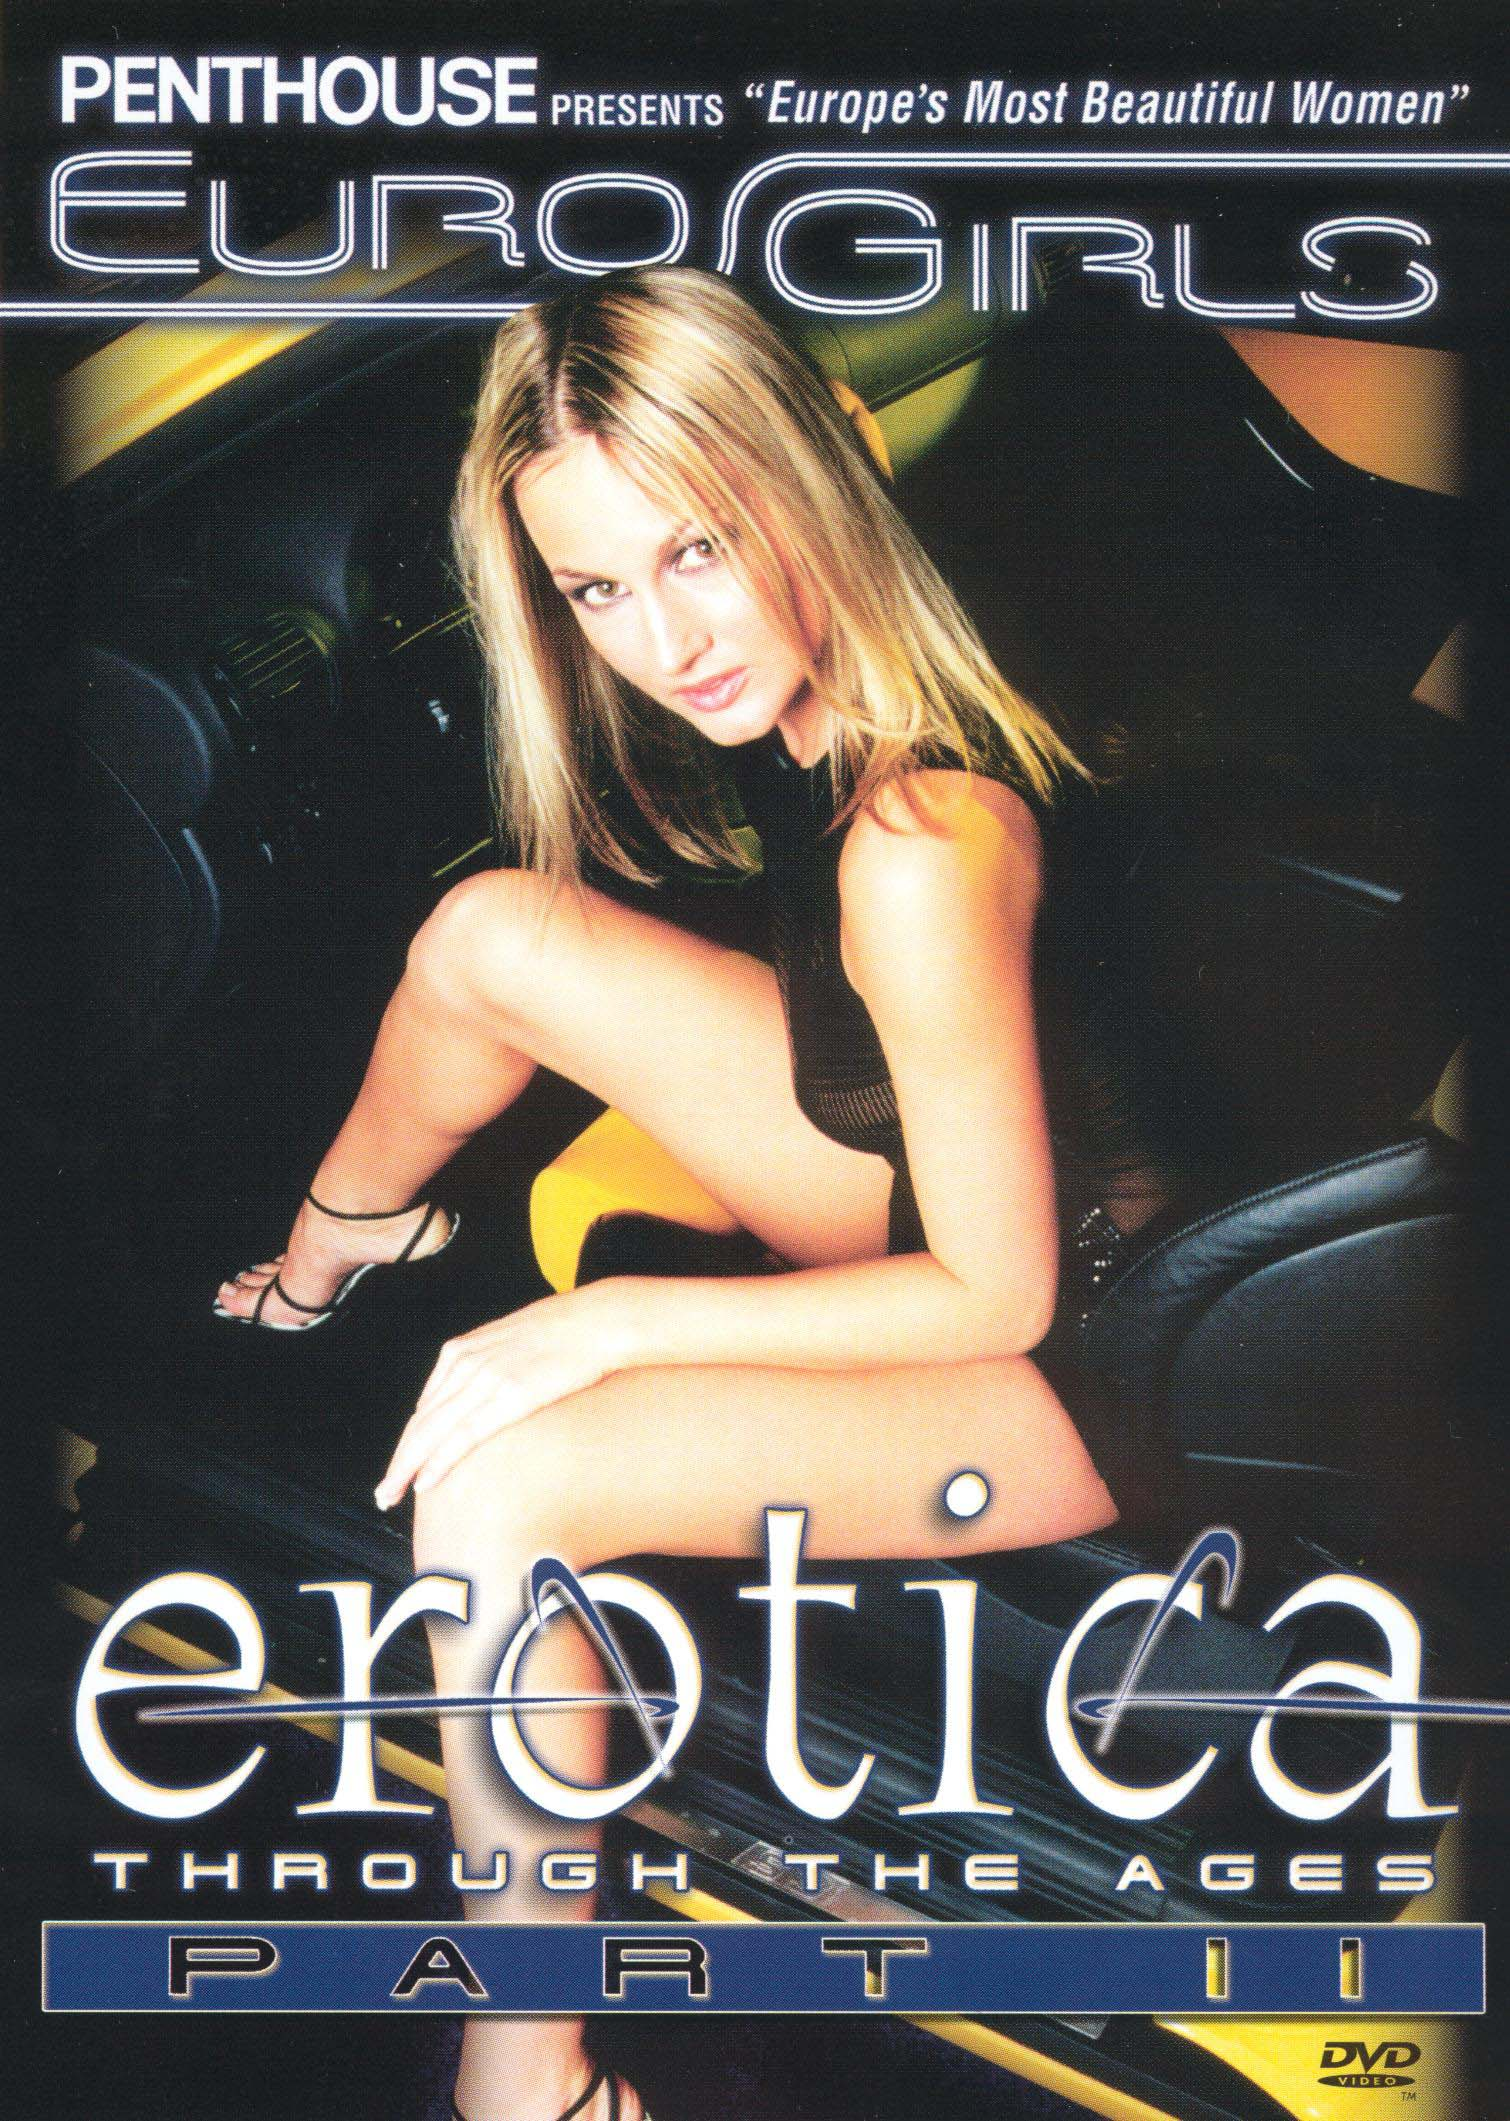 Penthouse: Euro Girls - Erotica Through the Ages II